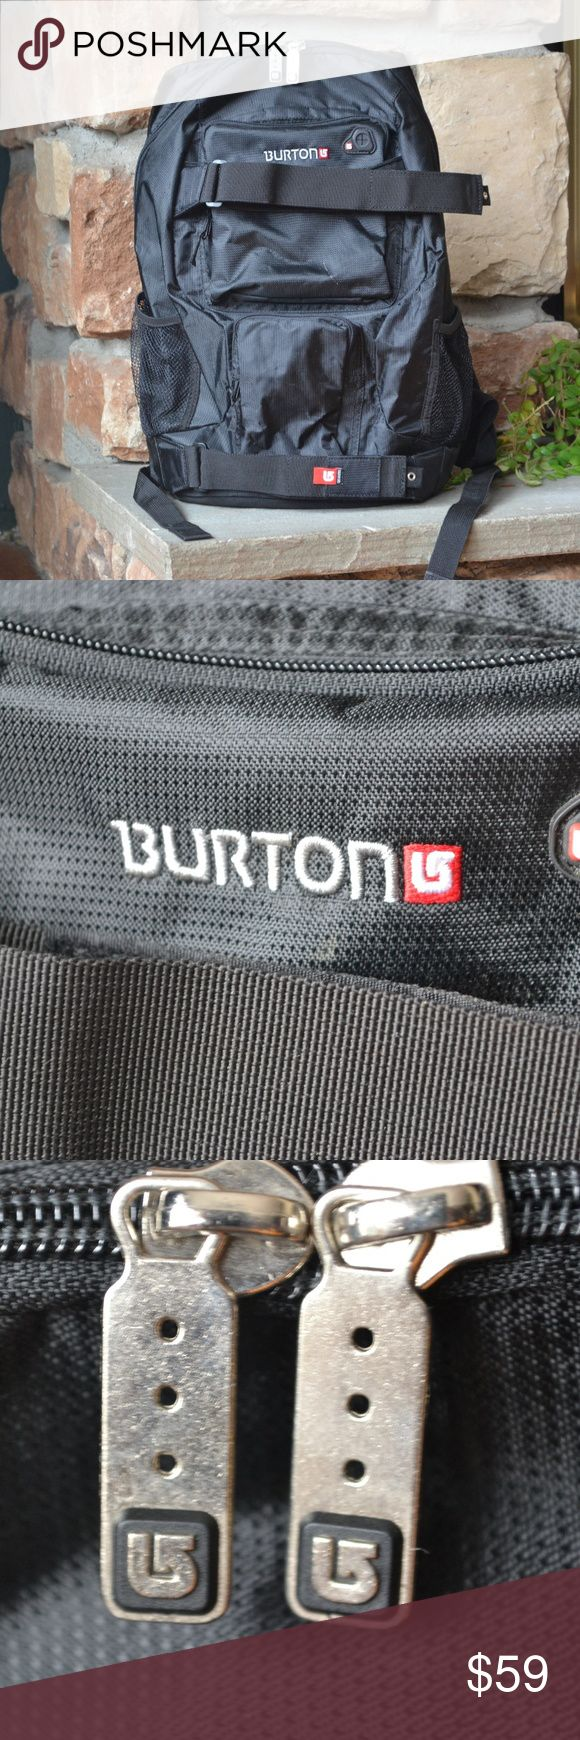 "BURTON Skateboard or Snowboard Backpack UNISEX Men's or Women's Backpack.  EUC. Used only twice for a short snowboarding trip.  Tons of zippered pockets for storage.  Chest strap and laptop pocket (fits up to 12"" laptop or Macbook).  Outside Velcro straps hold your board easily.  18"" x 11"" x 7.5""  Offers welcome! Burton Bags Backpacks"